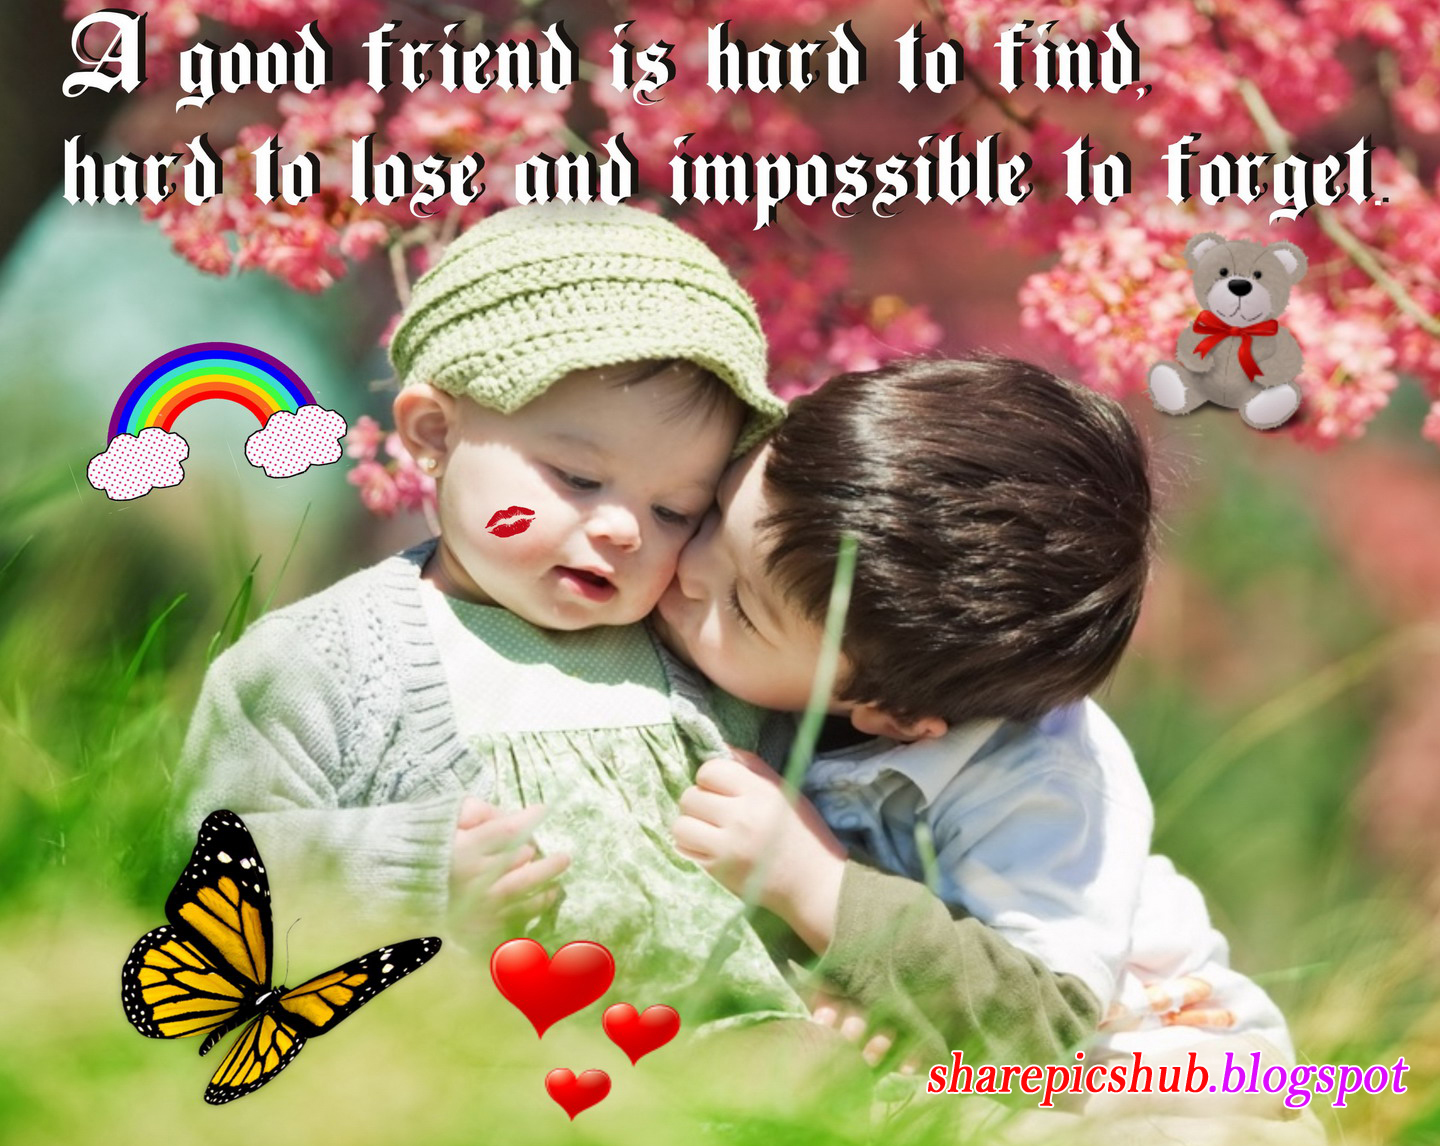 beautiful friendship quote wallpaper for facebook a good